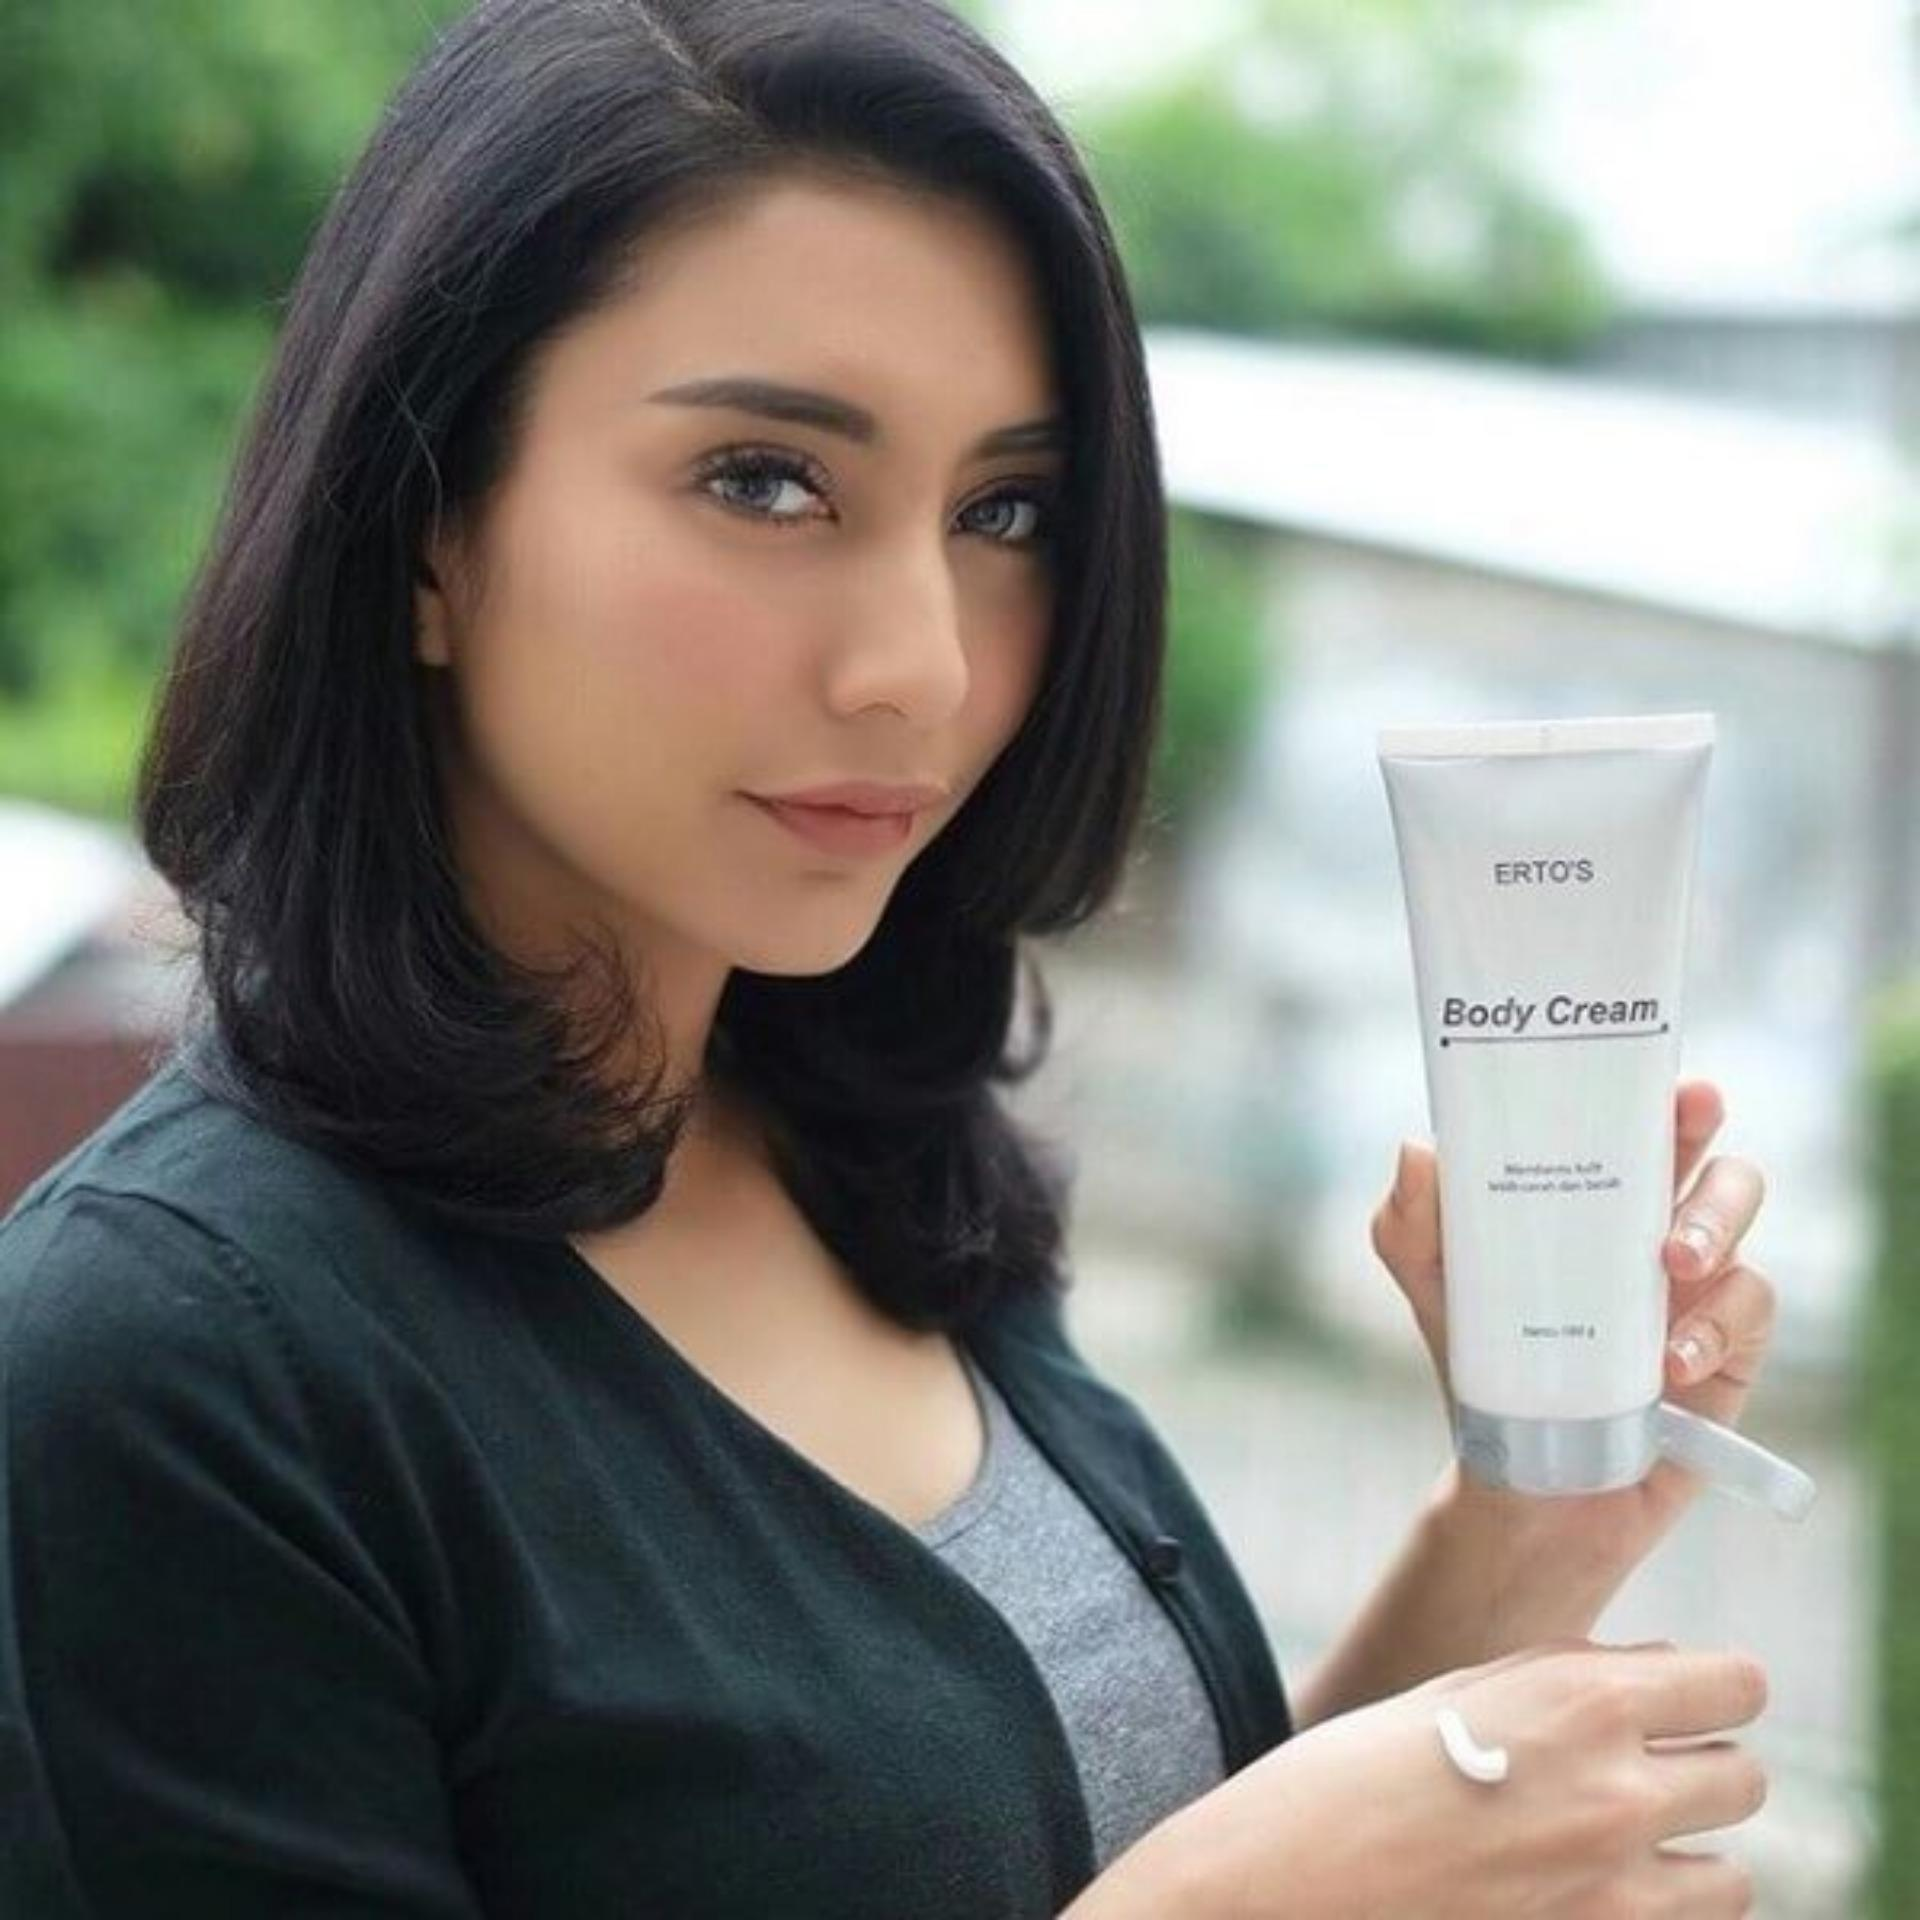 Ertos Body Cream Whitening Lotion Krim Pemutih Badan - Skincare Original BPOM